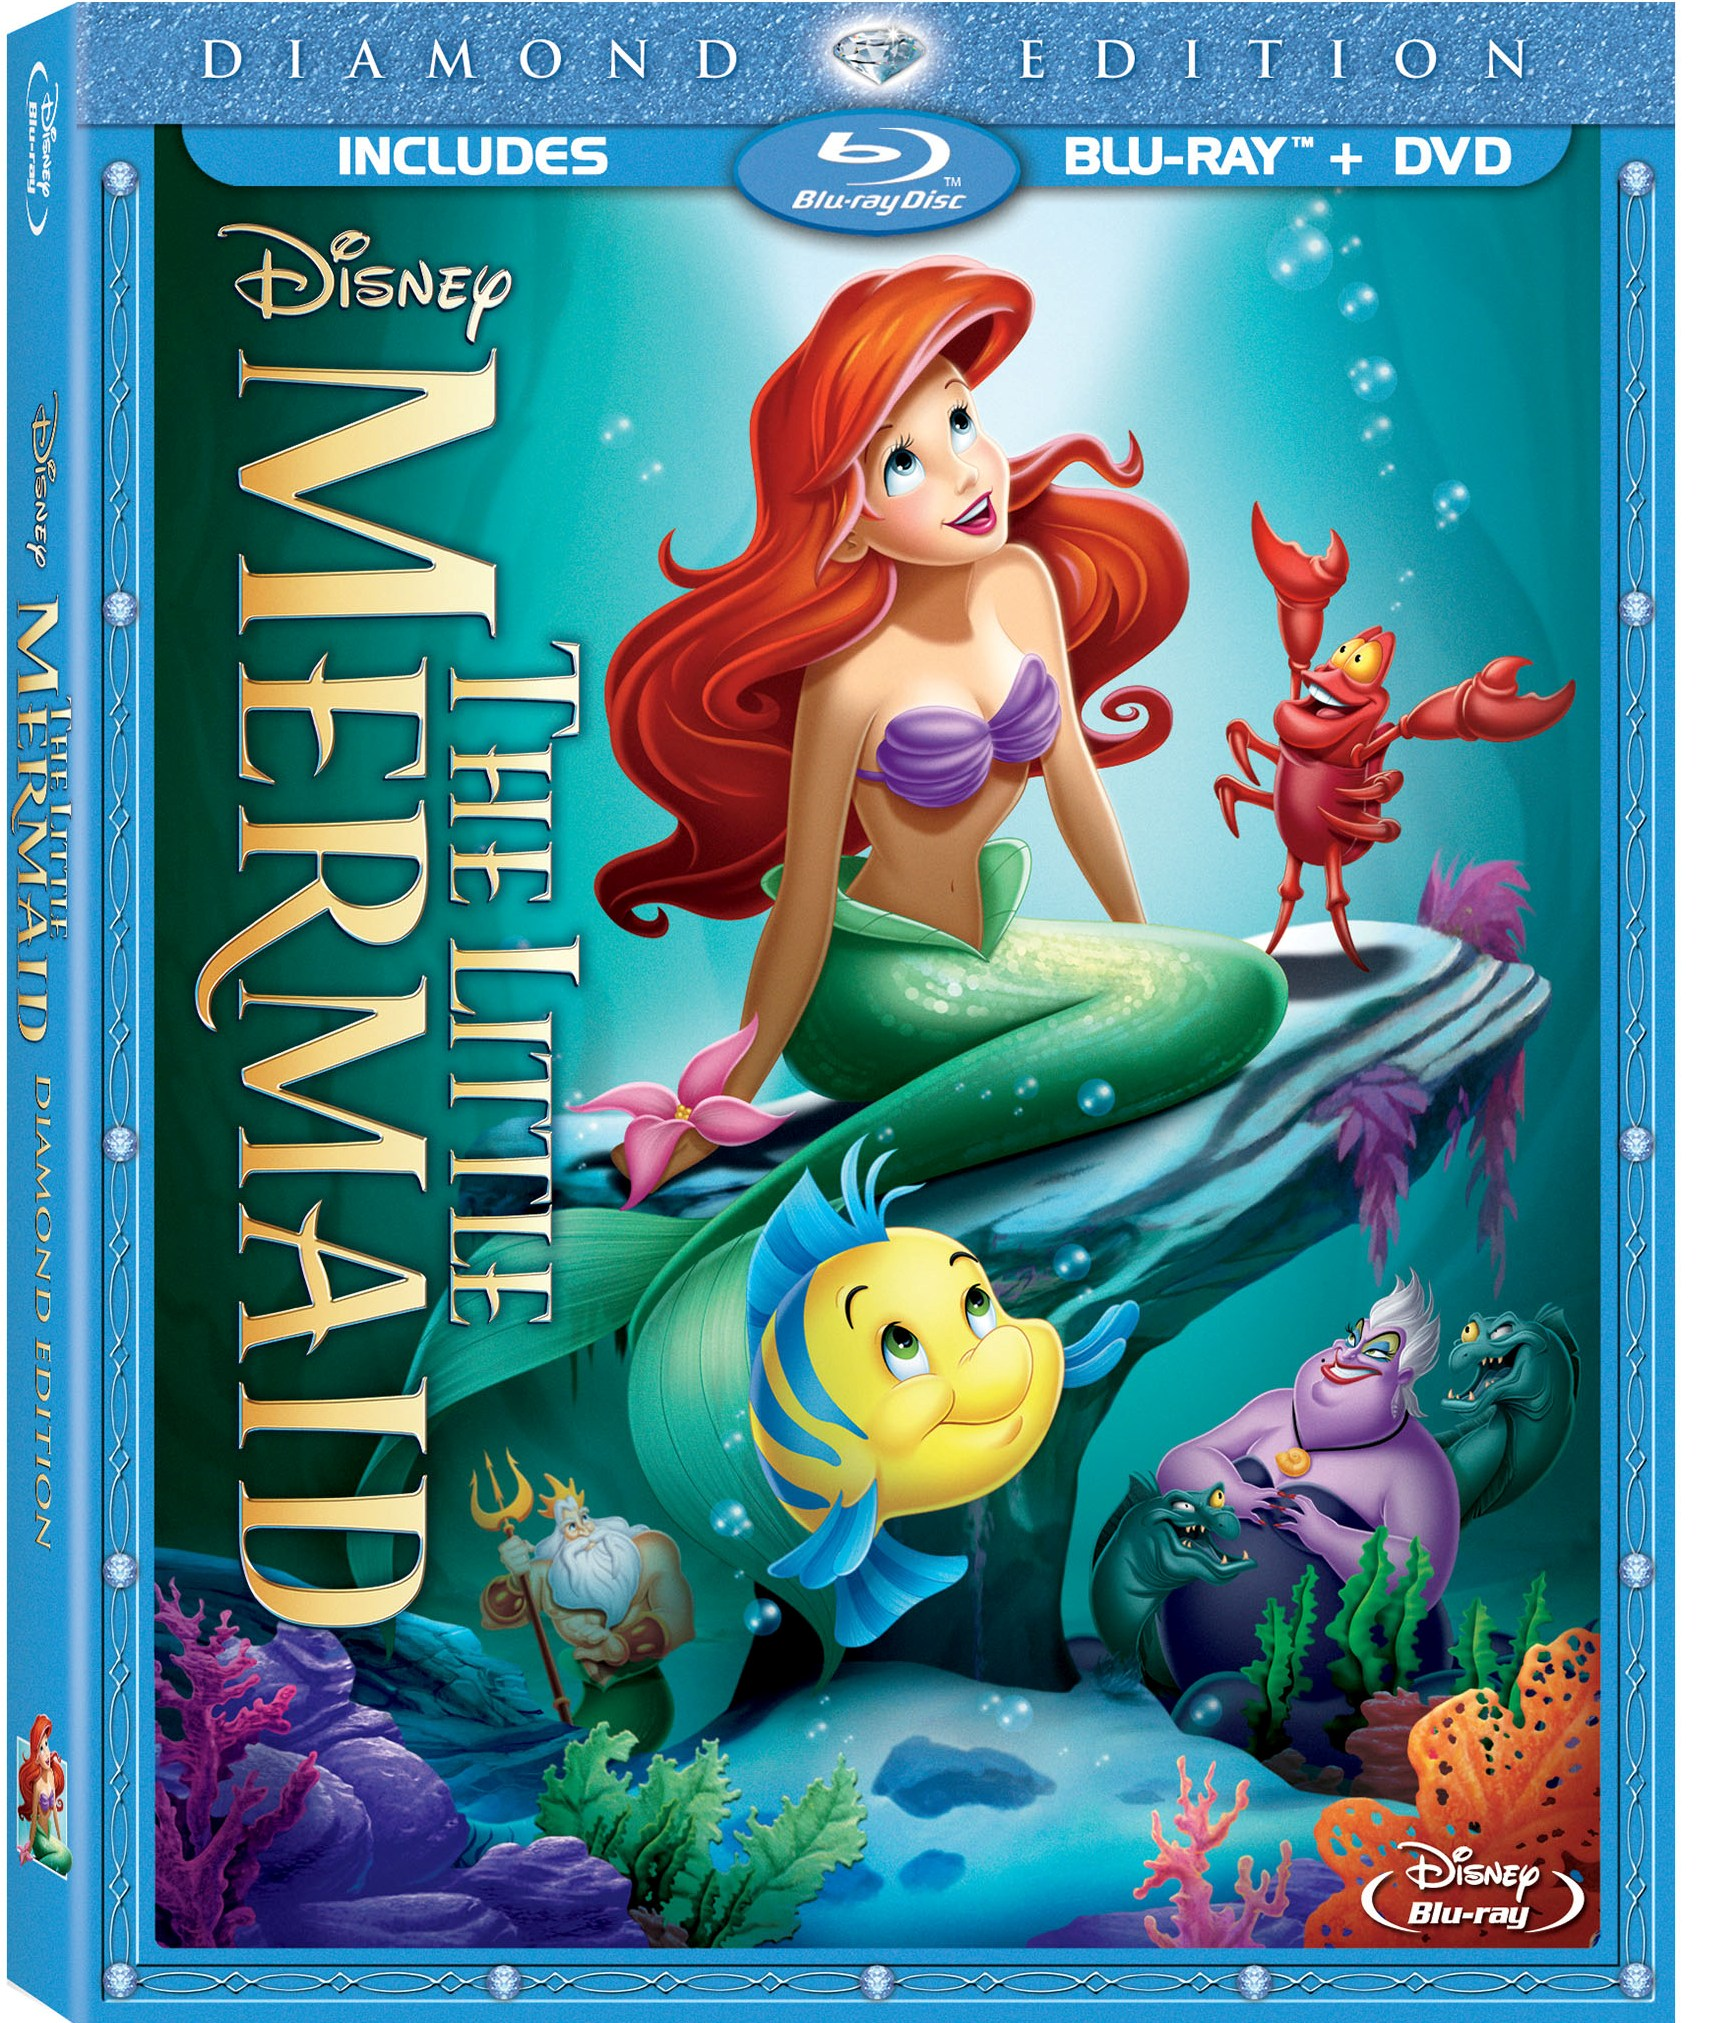 Splashes its ways into homes for the very first time in blu ray hi